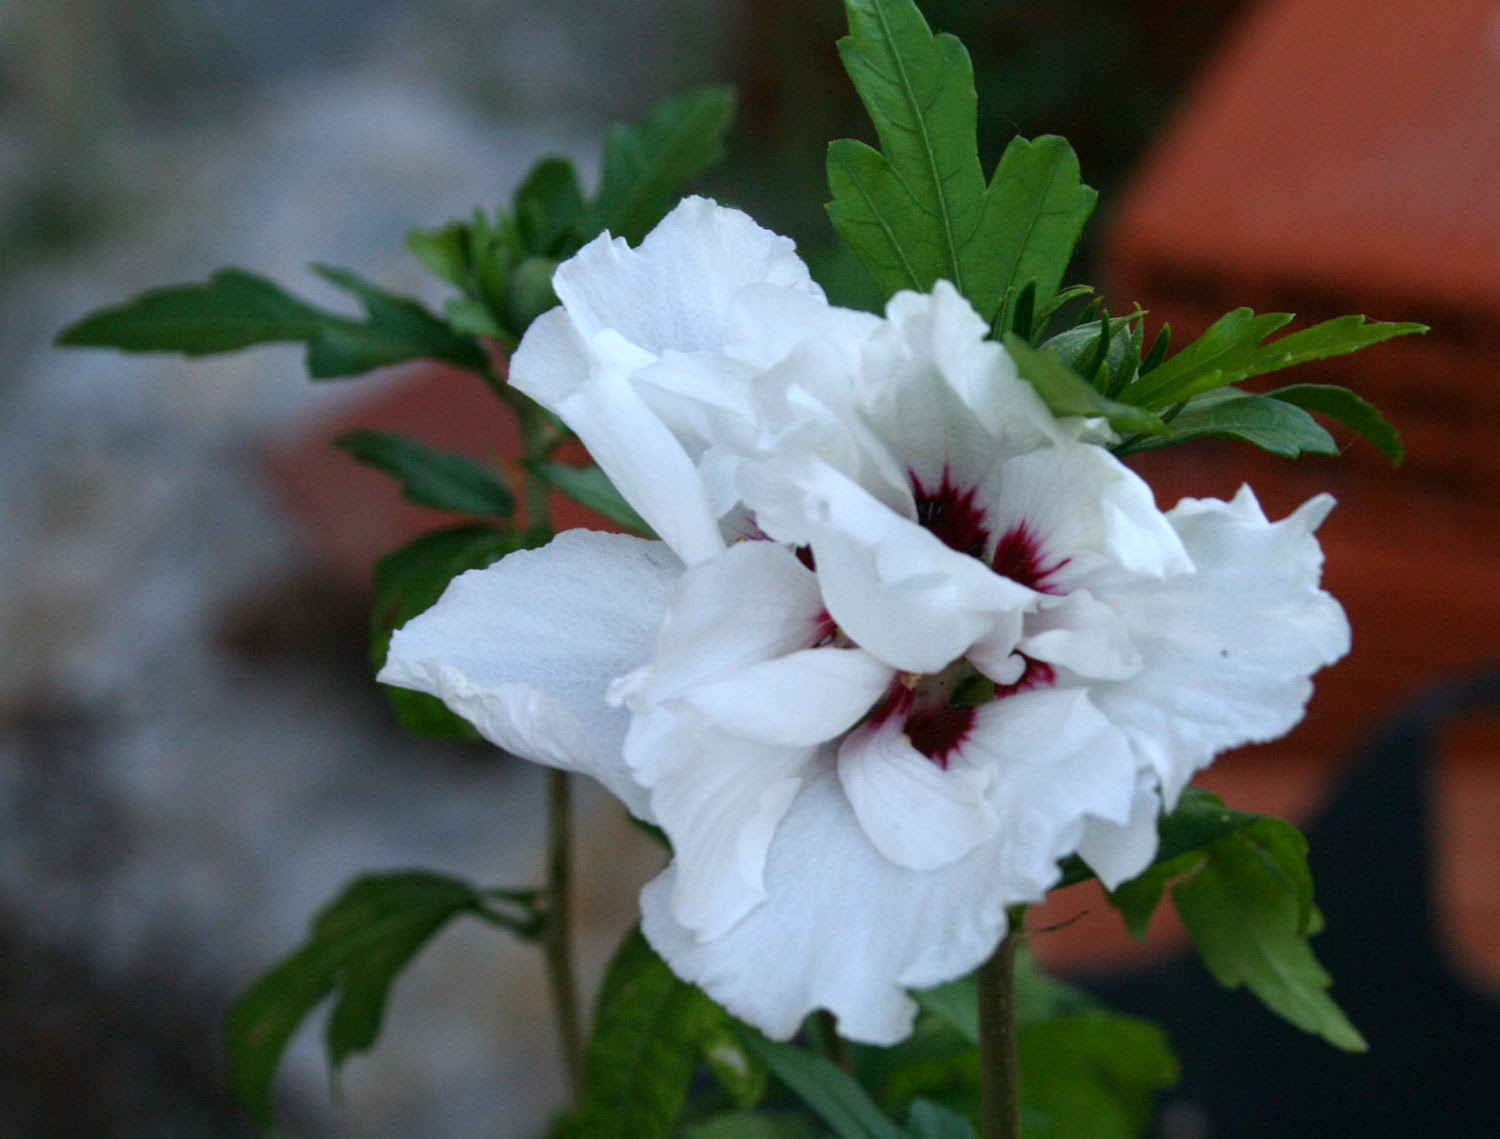 The first Hibiscus flower